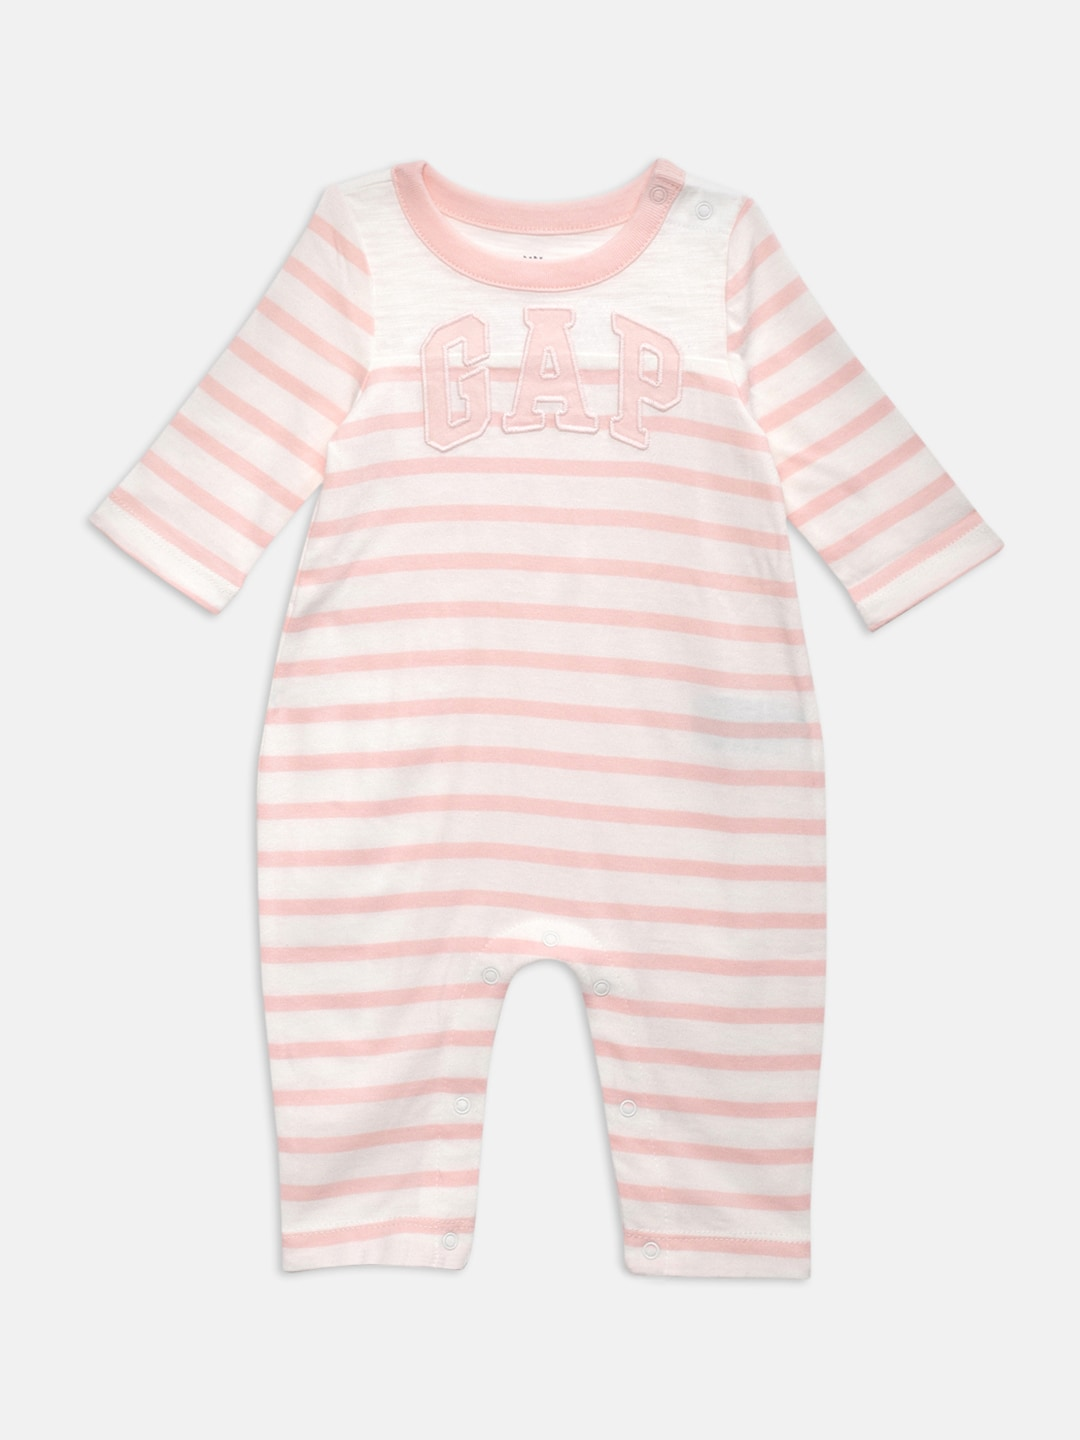 aa2e9ee92 Buy GAP Baby Girls' Off White Love Stripe One Piece Romper - Rompers ...